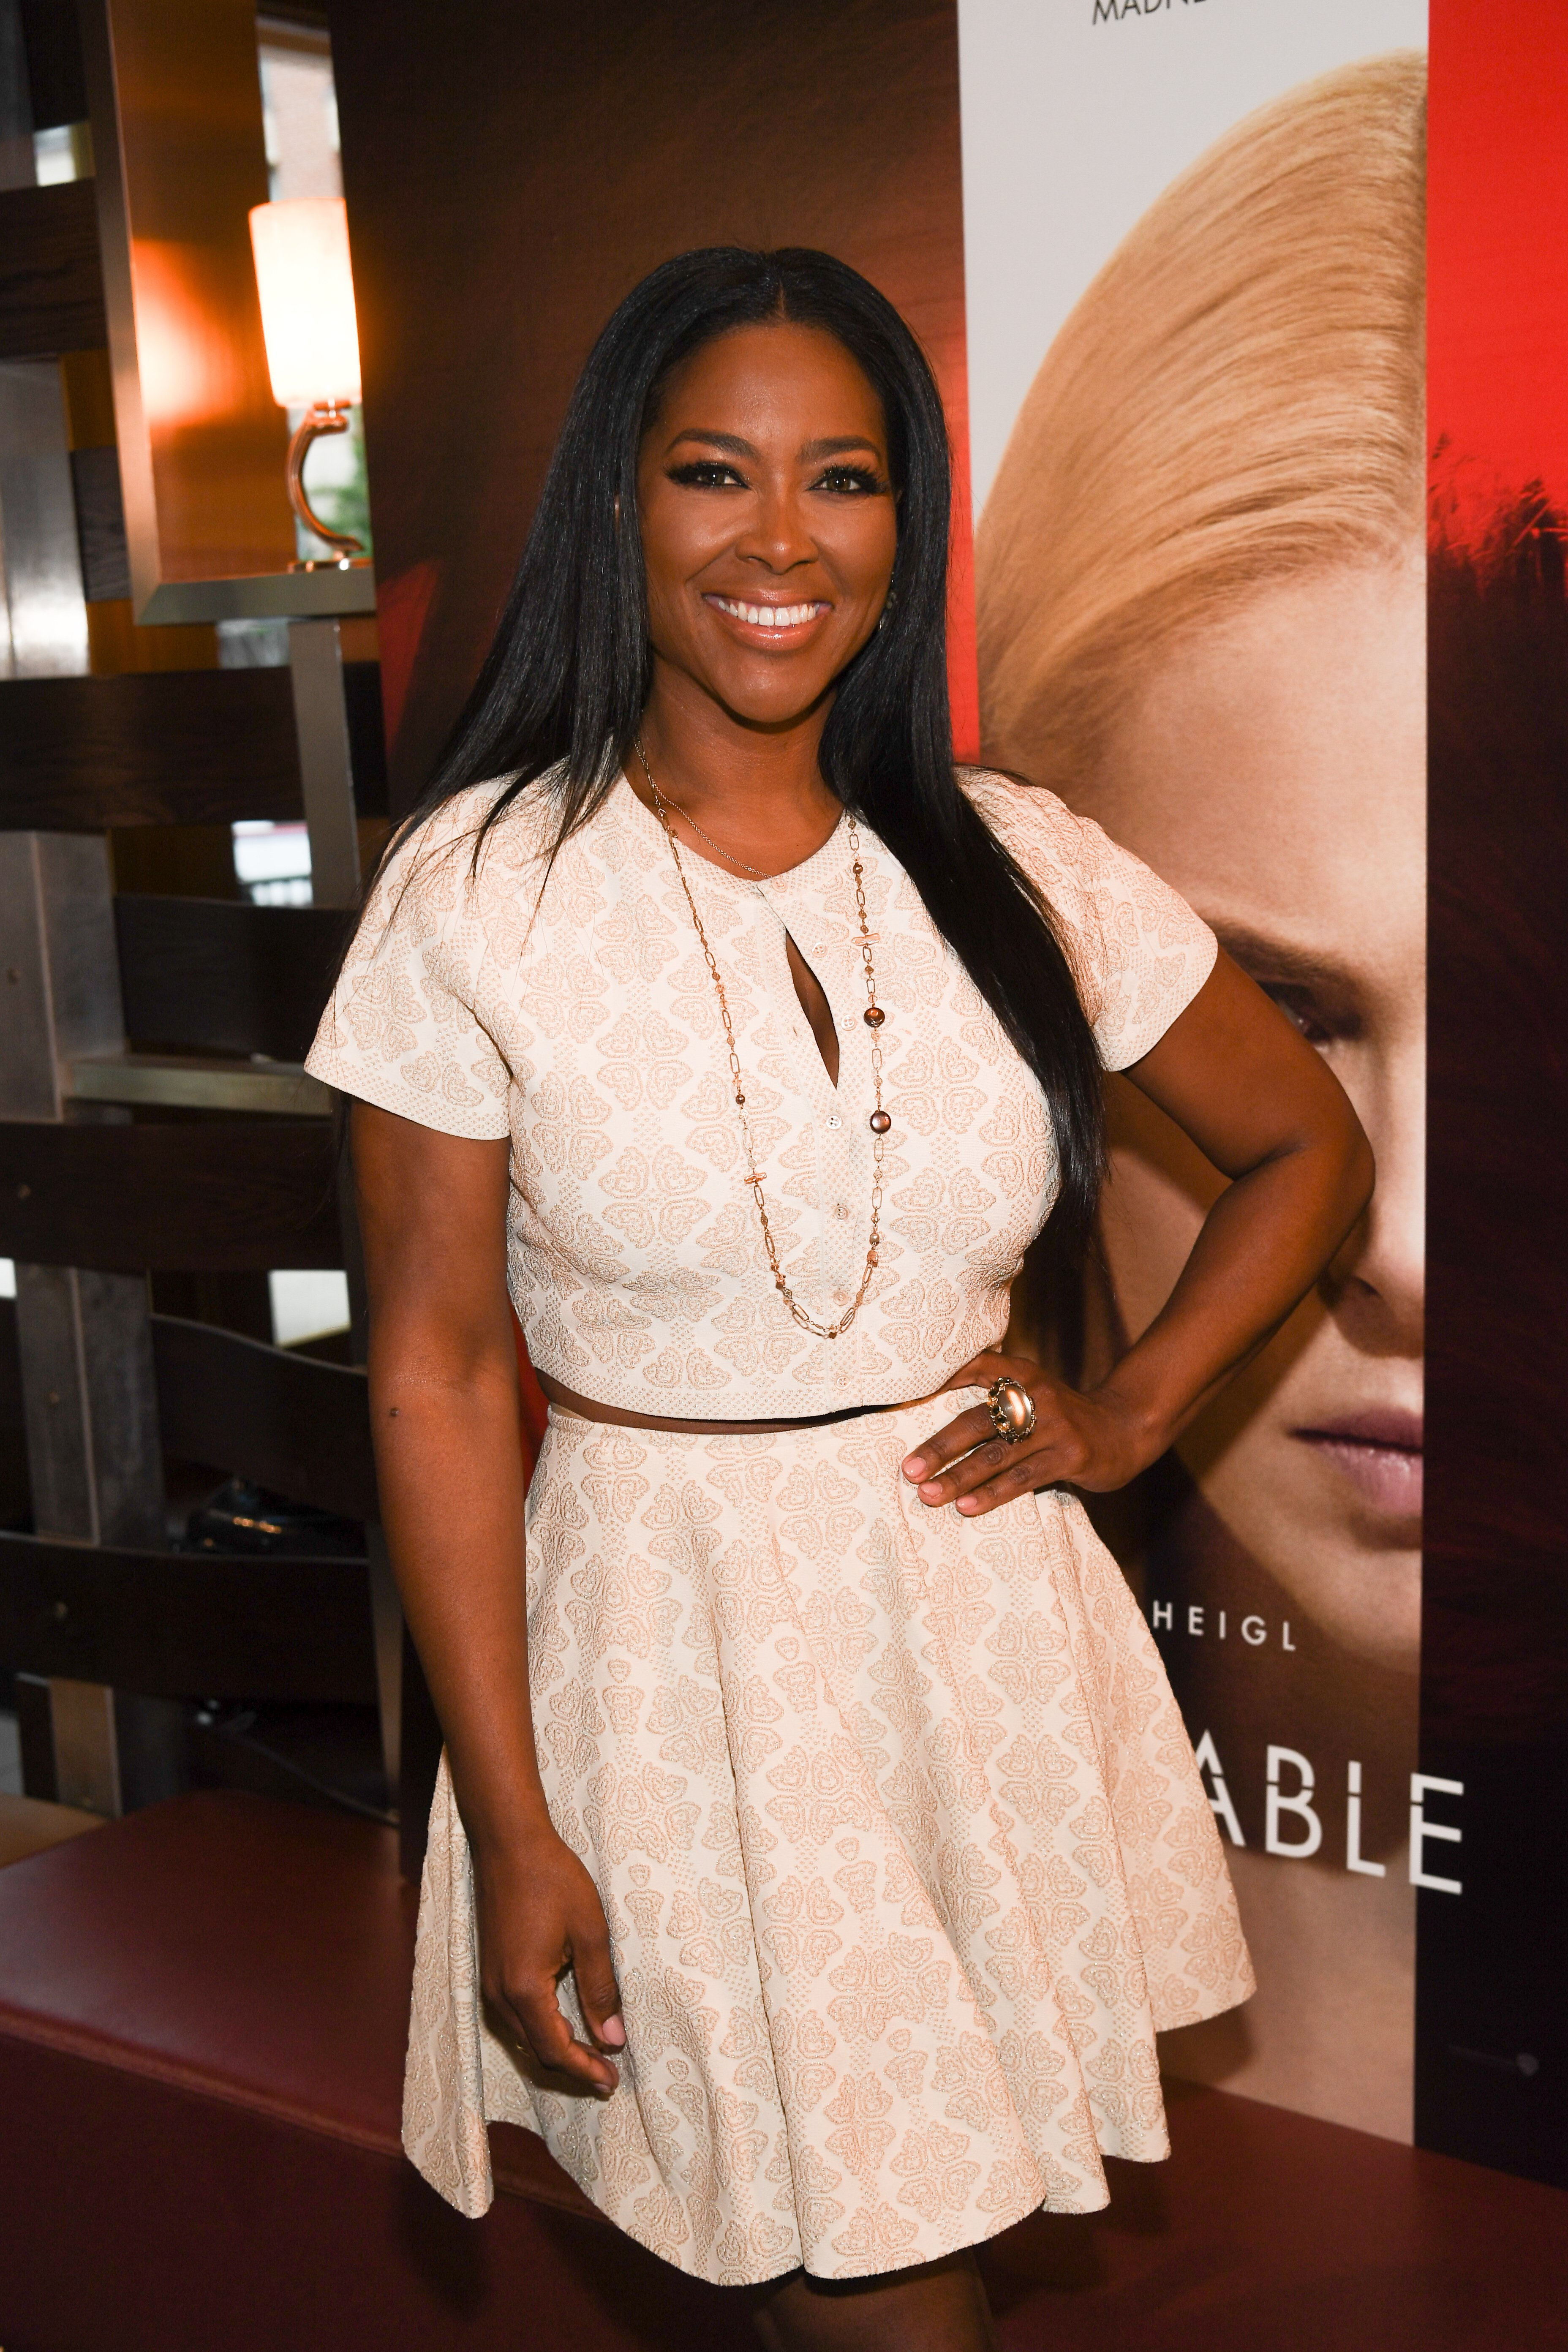 """Kenya Moore attends the screening of """"Unforgettable"""" in Atlanta, Georgia on April 12, 2017 